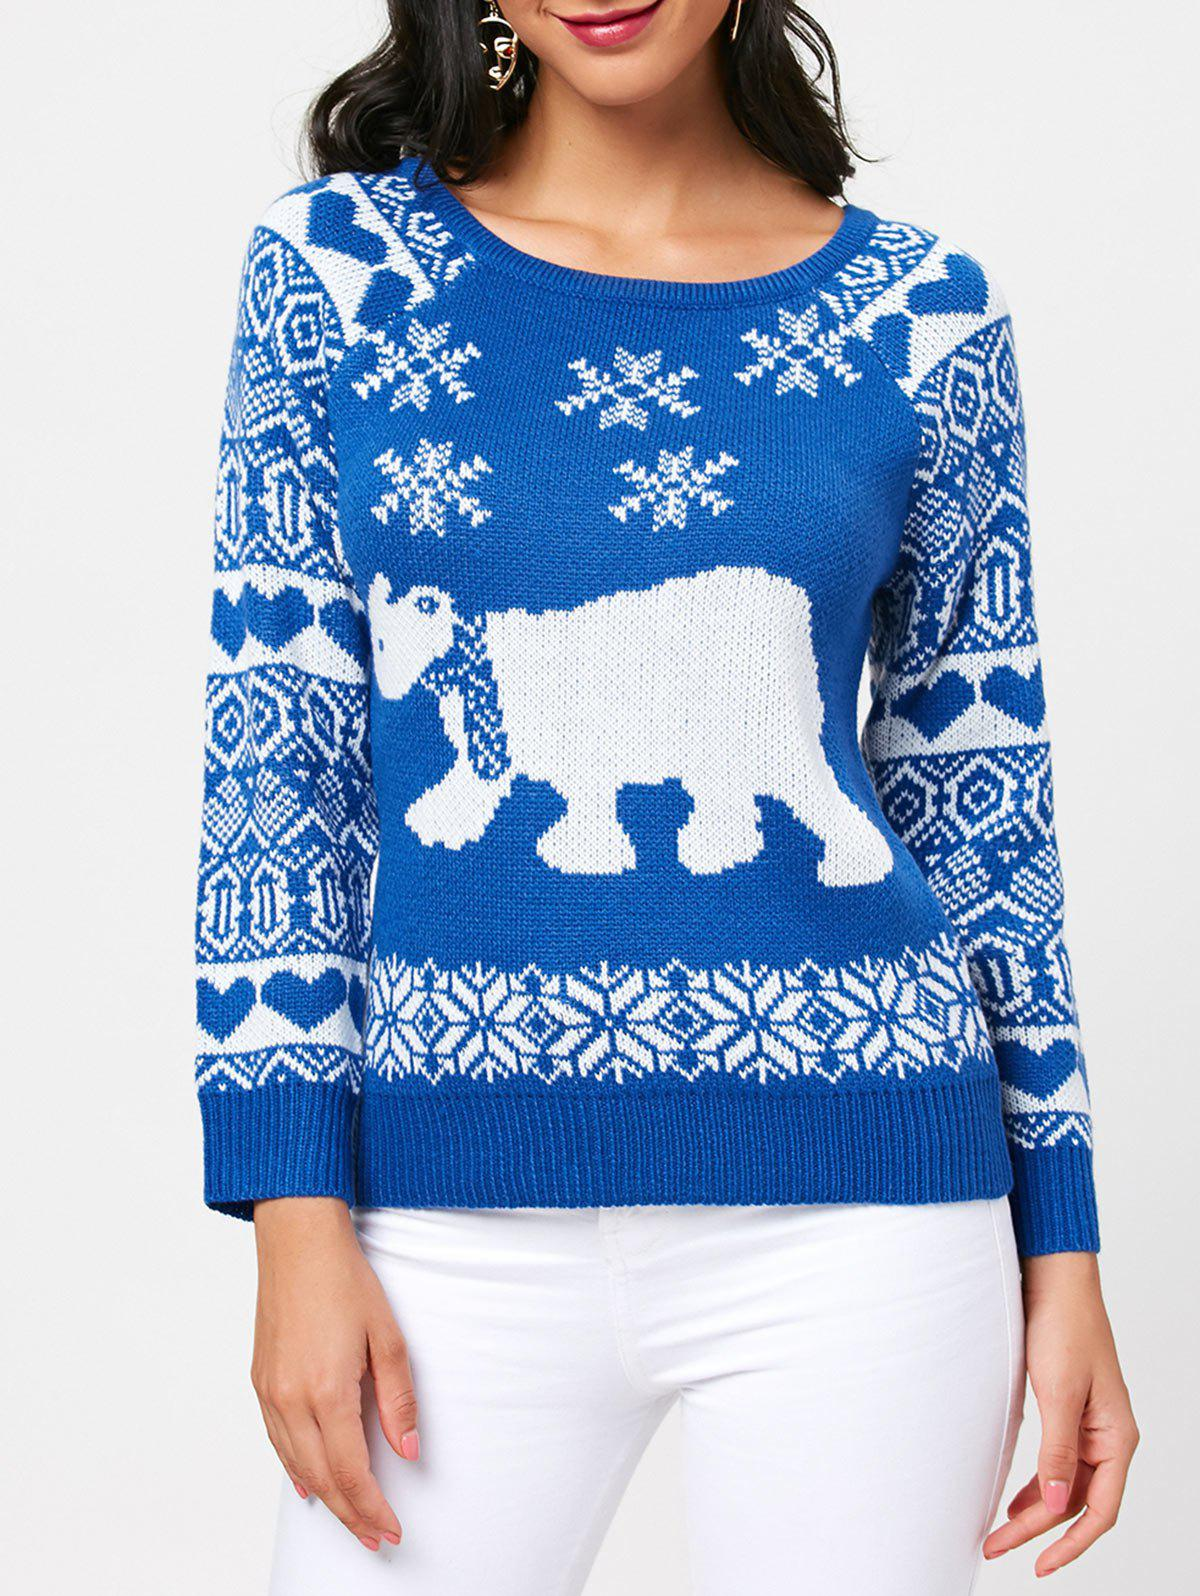 Raglan Sleeve Pullover Sea Bear Sweater - BLUE ONE SIZE